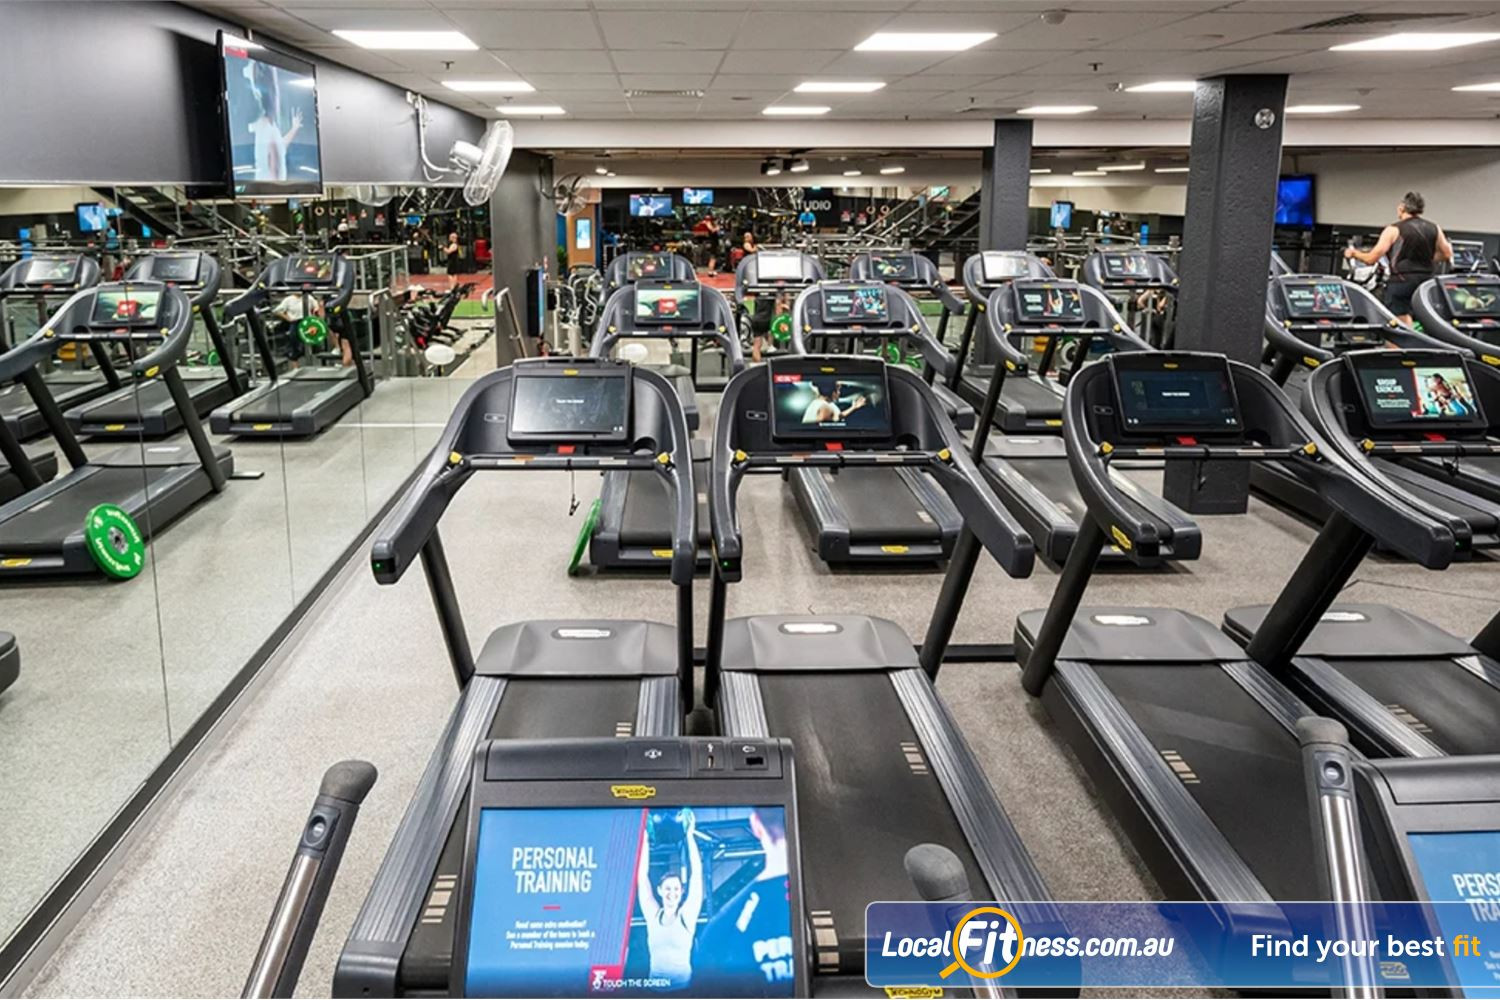 Fitness First Platinum George St. Sydney The fully equipped cardio area at Fitness First Platinum Sydney gym.